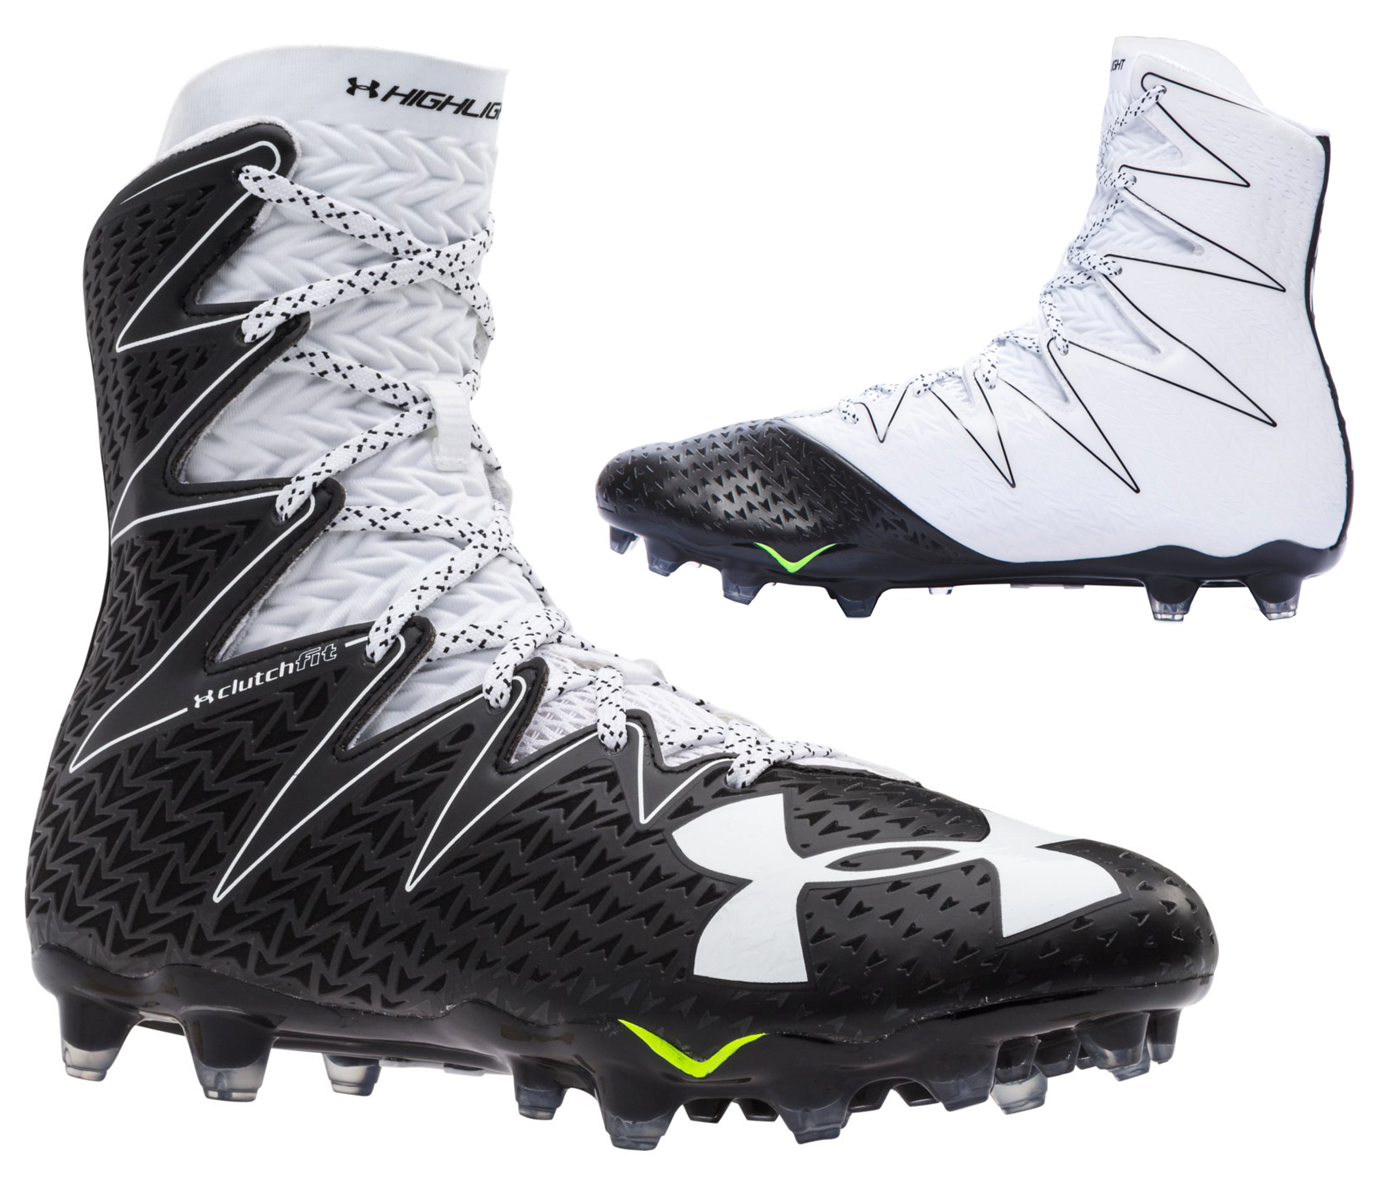 under armour highlight cleats for sale cheap   OFF34% The Largest ... 97fd7344a585